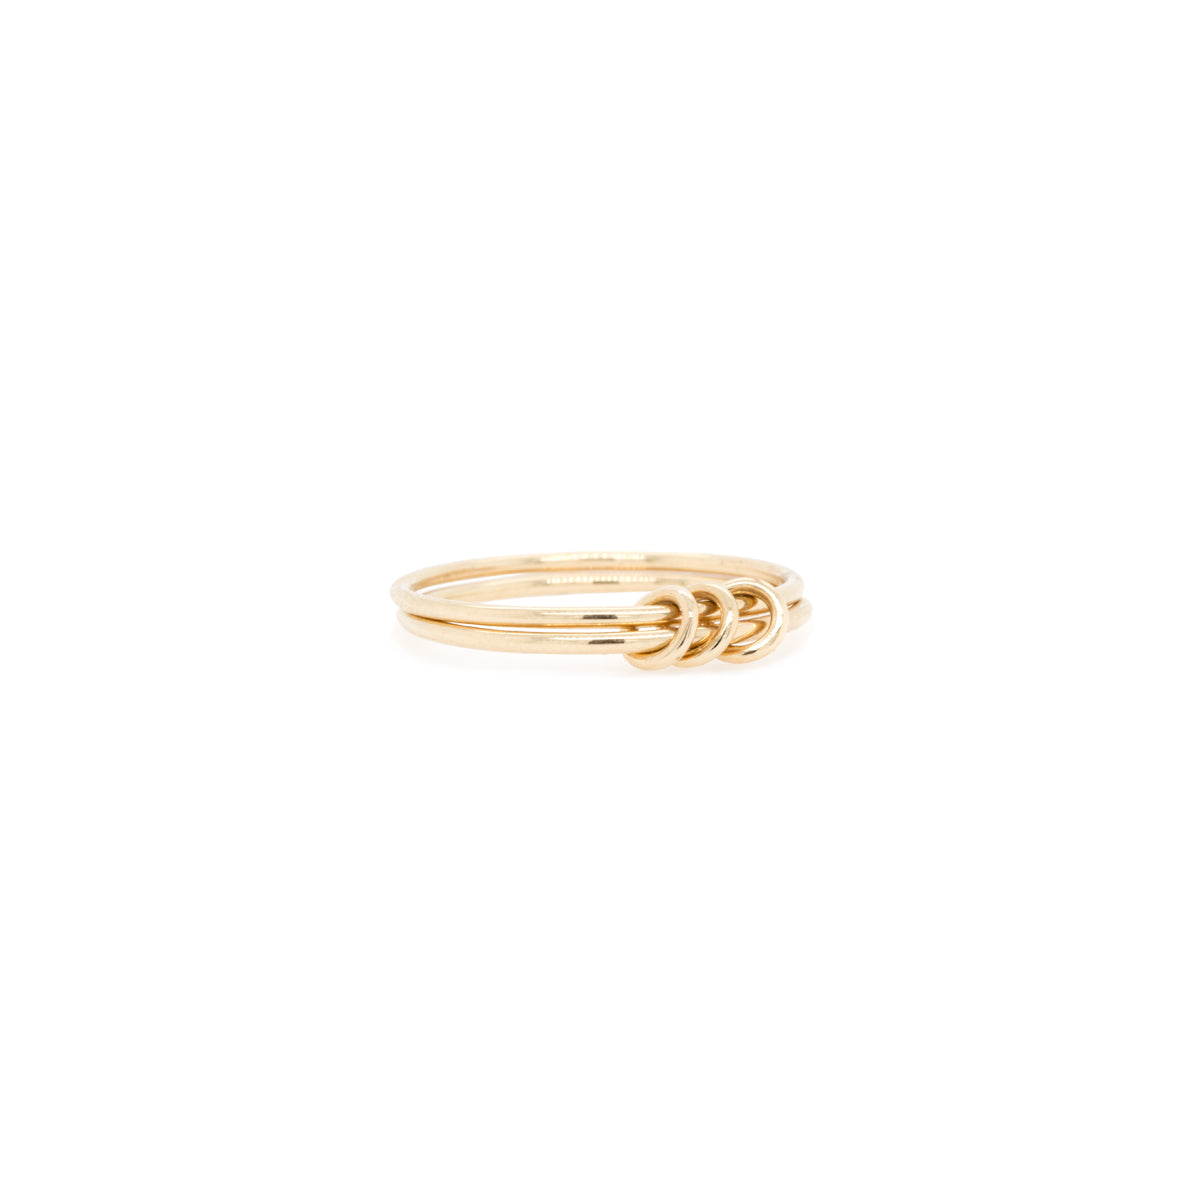 14k 2 thin linked rings